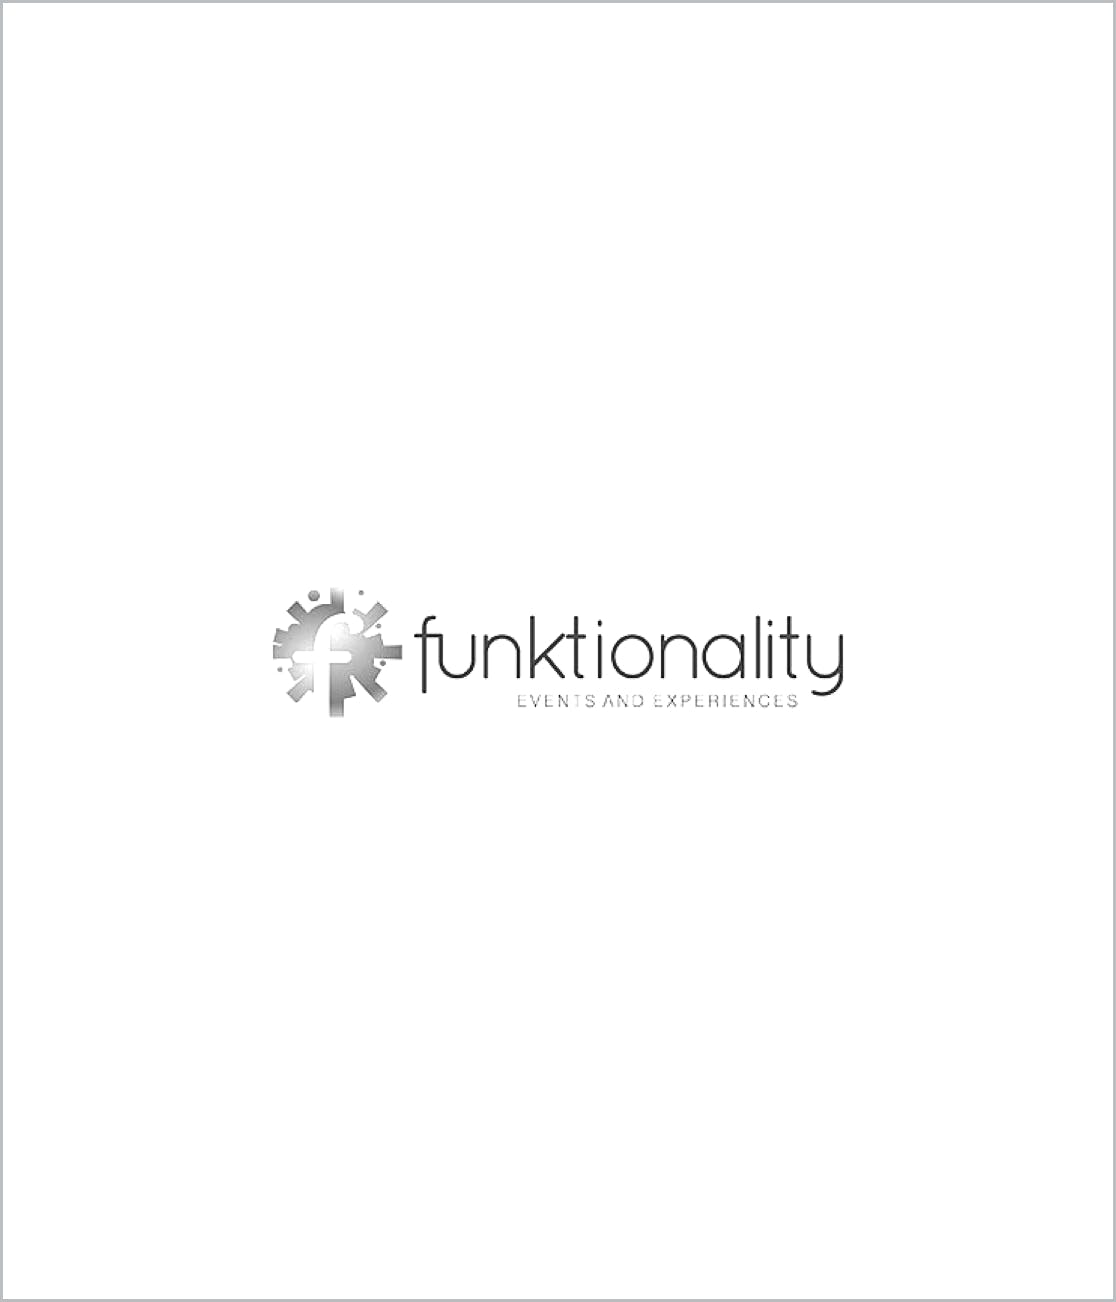 Funktionality Logo Supplier